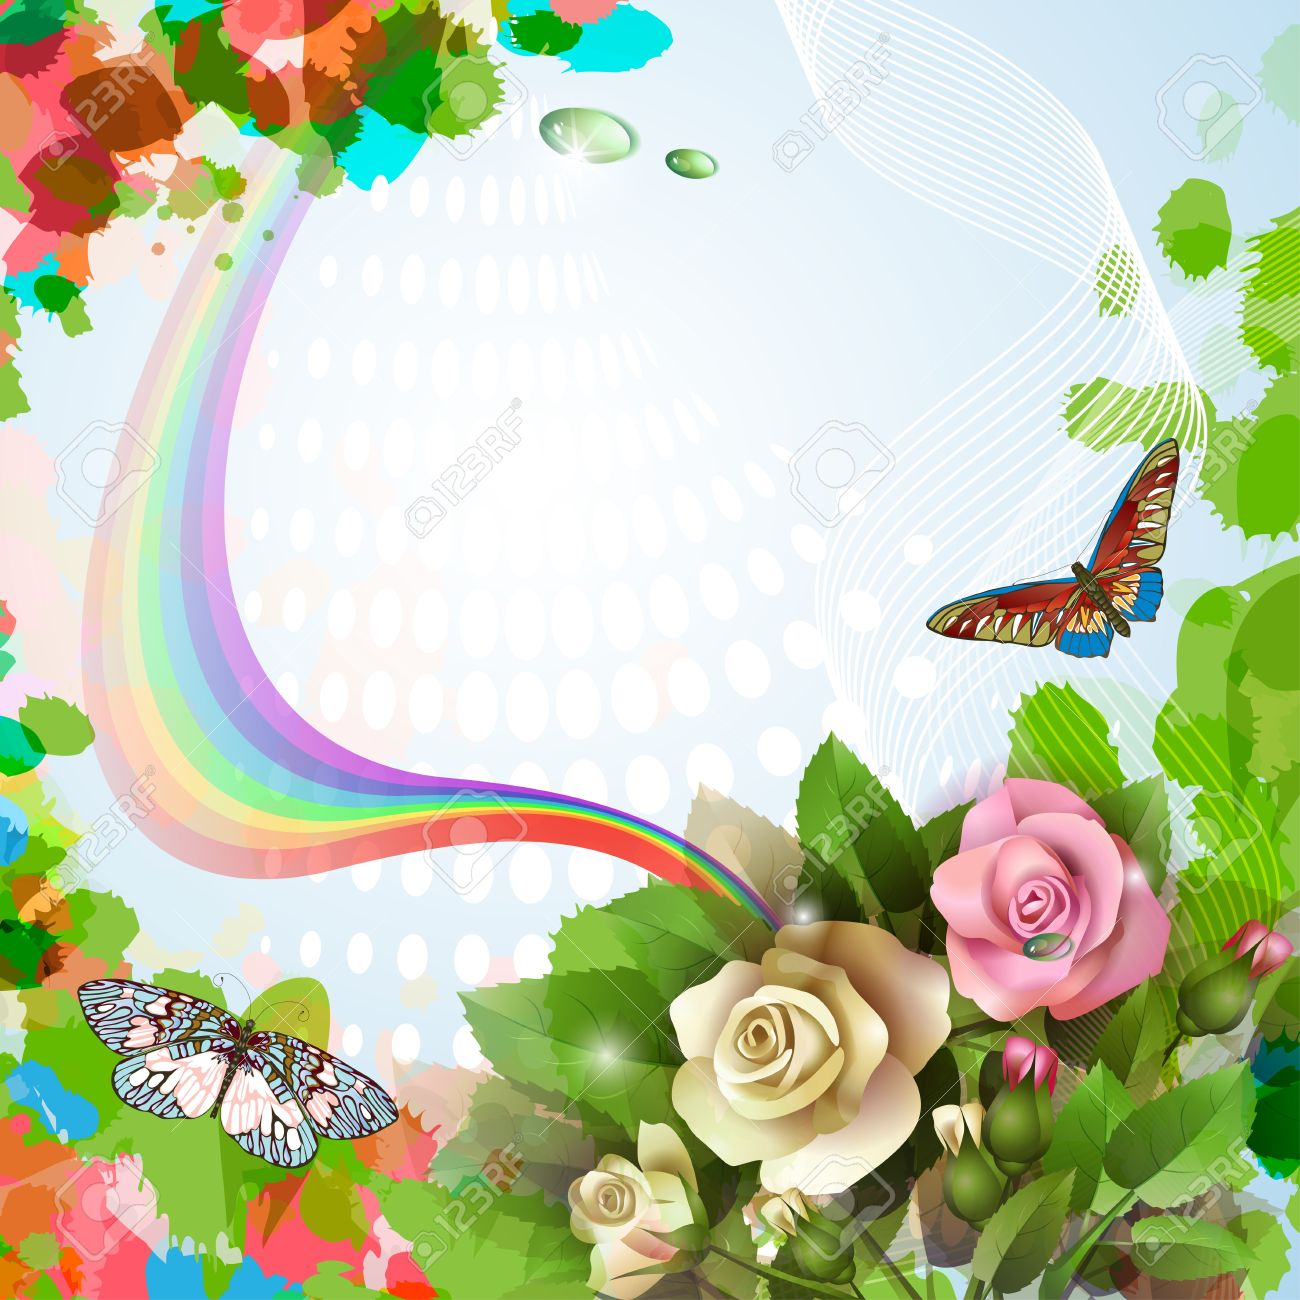 Elegant Background With Beautiful Roses Rainbow Butterflies And Drops Stock Vector